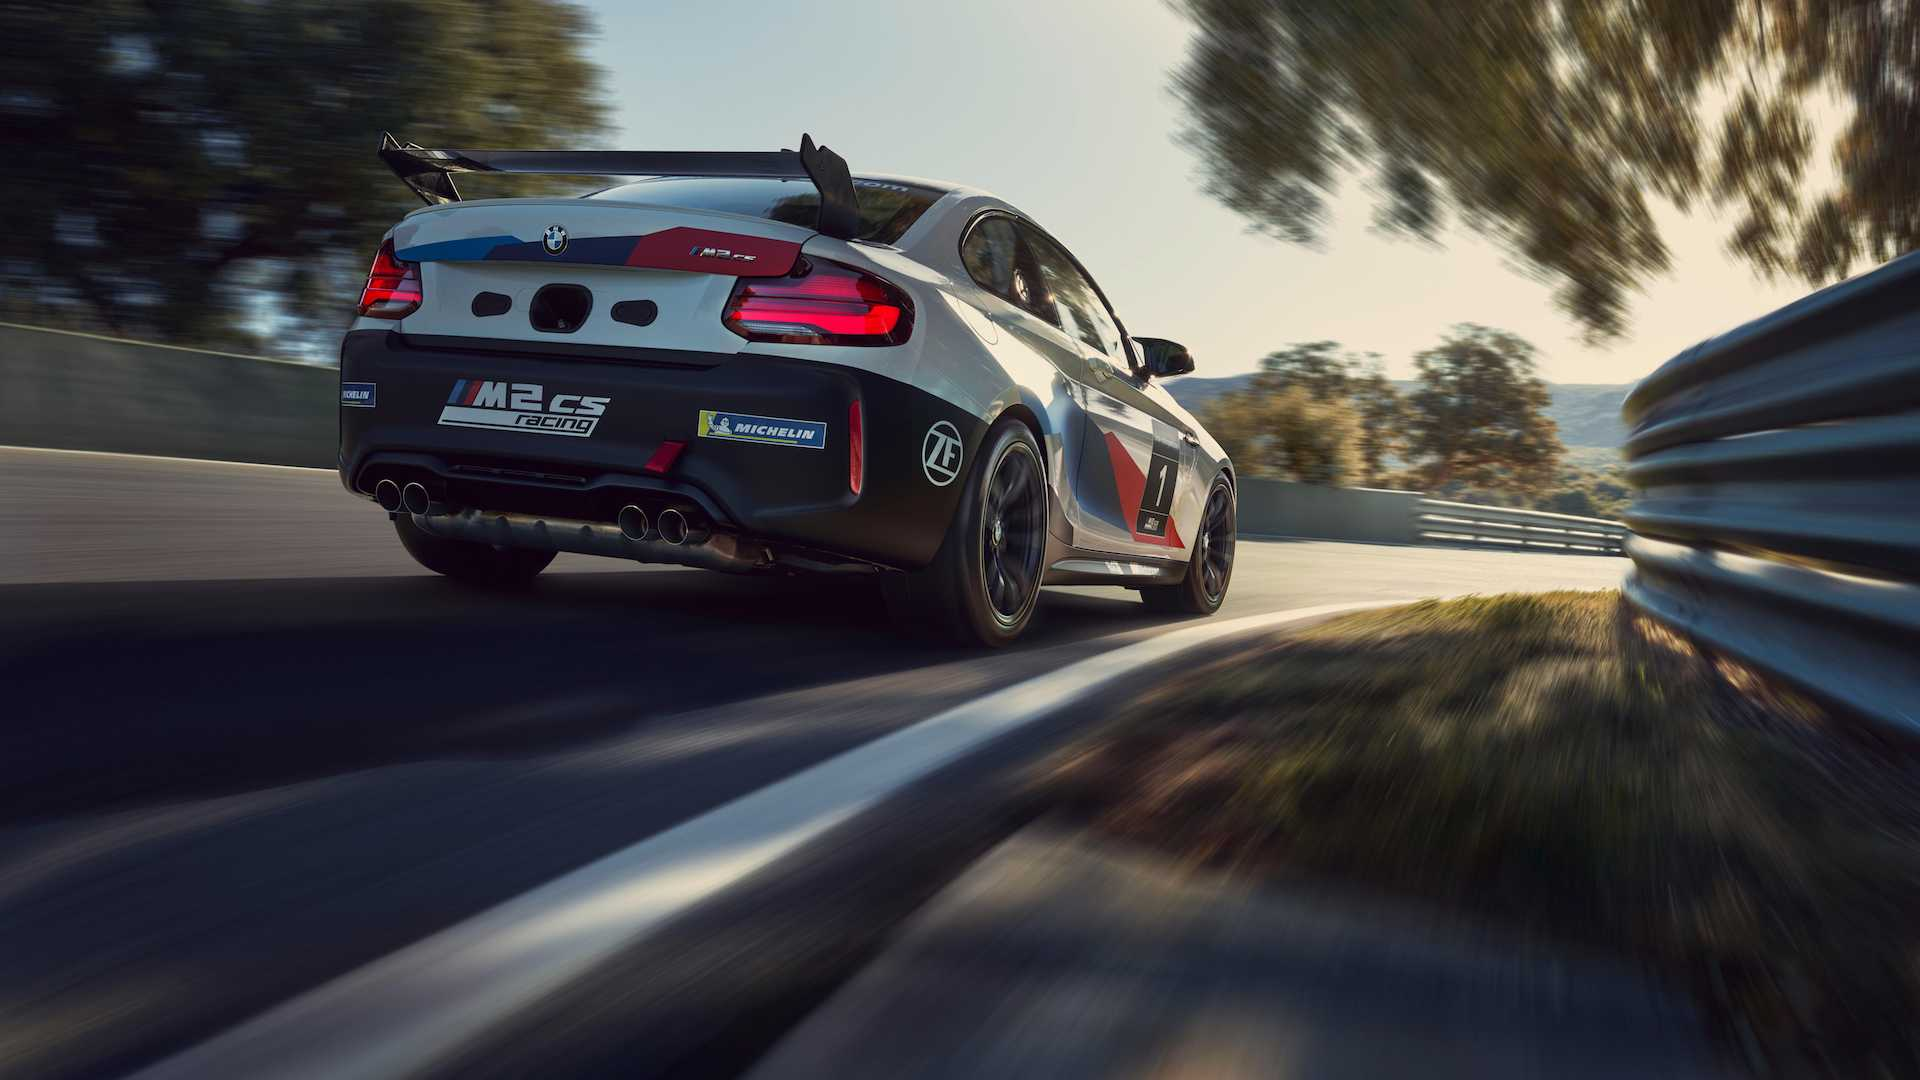 BMW Introduces M2 CS Racing As An Affordable Track Machine